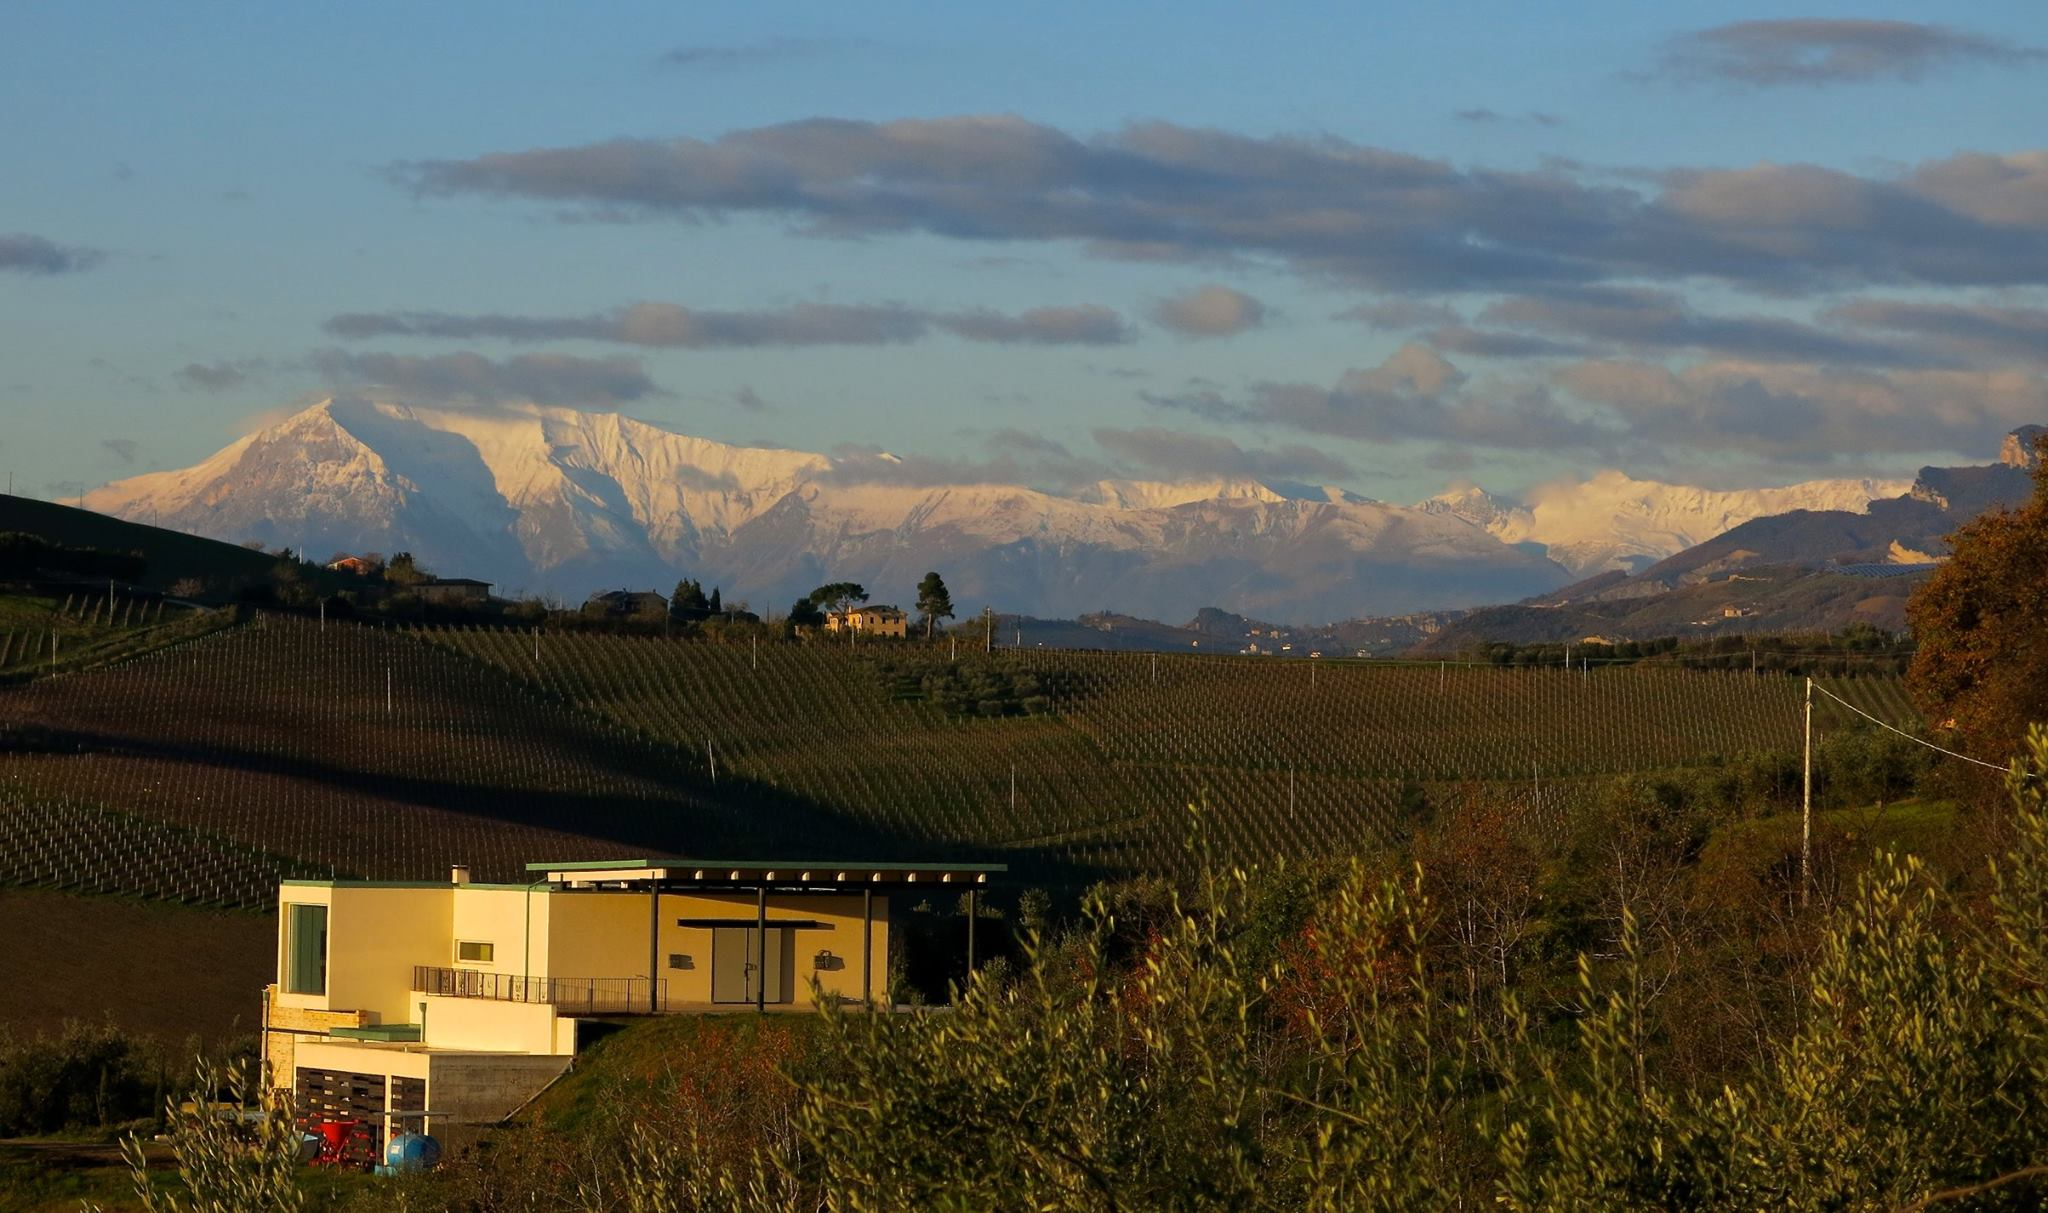 Winery in Le Marche, Italy with alps